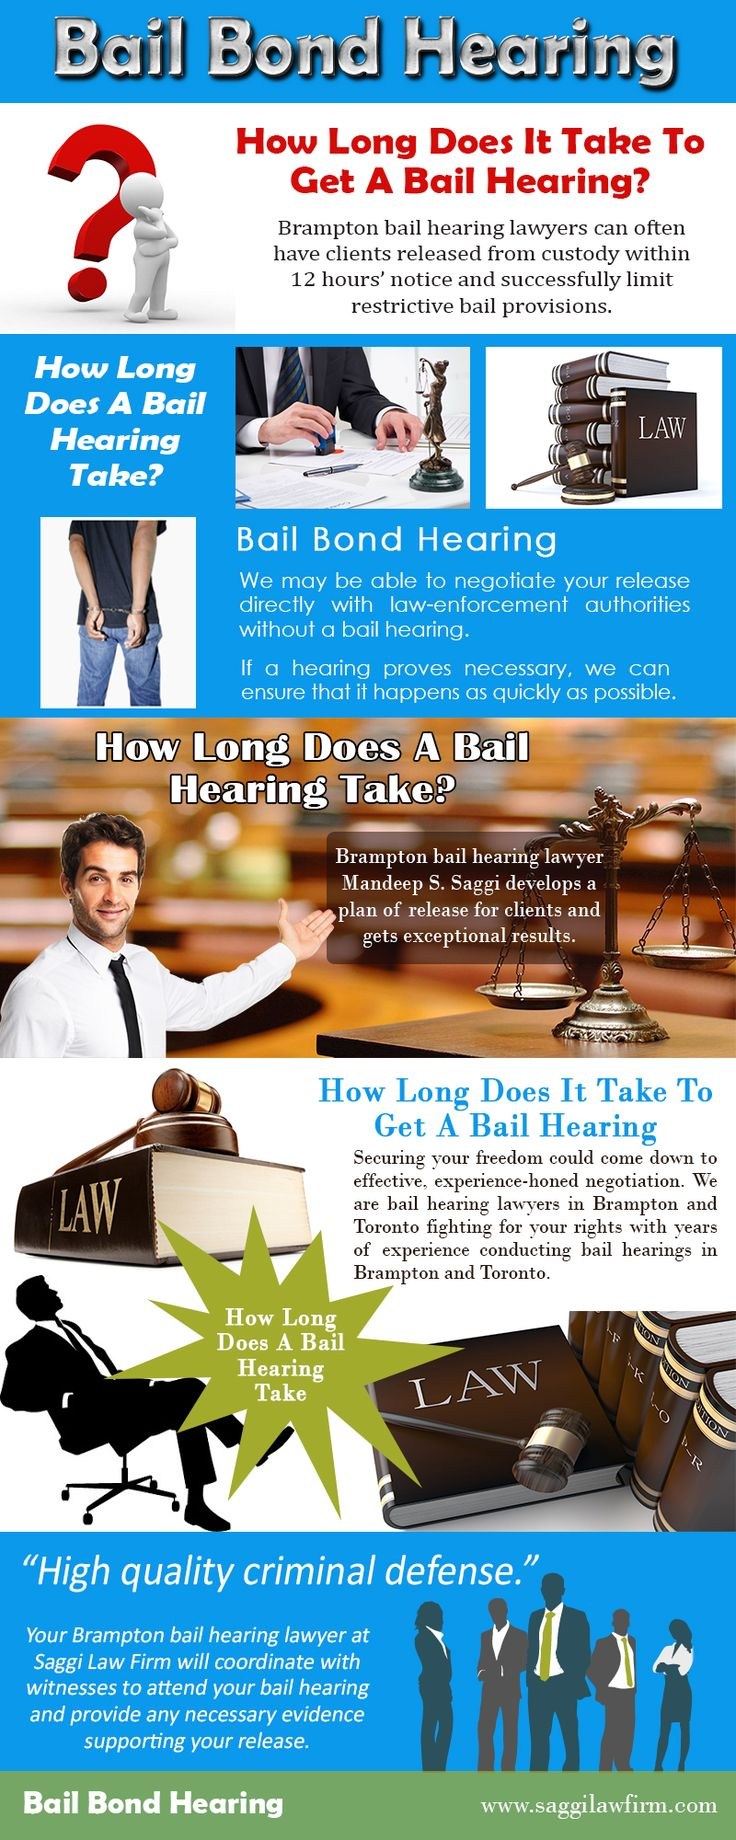 Check this link right here http://saggilawfirm.com/criminal-law/bail-hearings-bail-reviews/ for more information on bail bond hearing. Bail bonds are usually set during a formal procedure called a bail hearing. If the offense is not a minor one, the defendant will be held in custody until he is brought before a judge at a bail bond hearing. Bail bonds are a kind of insurance policy that is taken out to ensure that the defendant shows up for his court date.